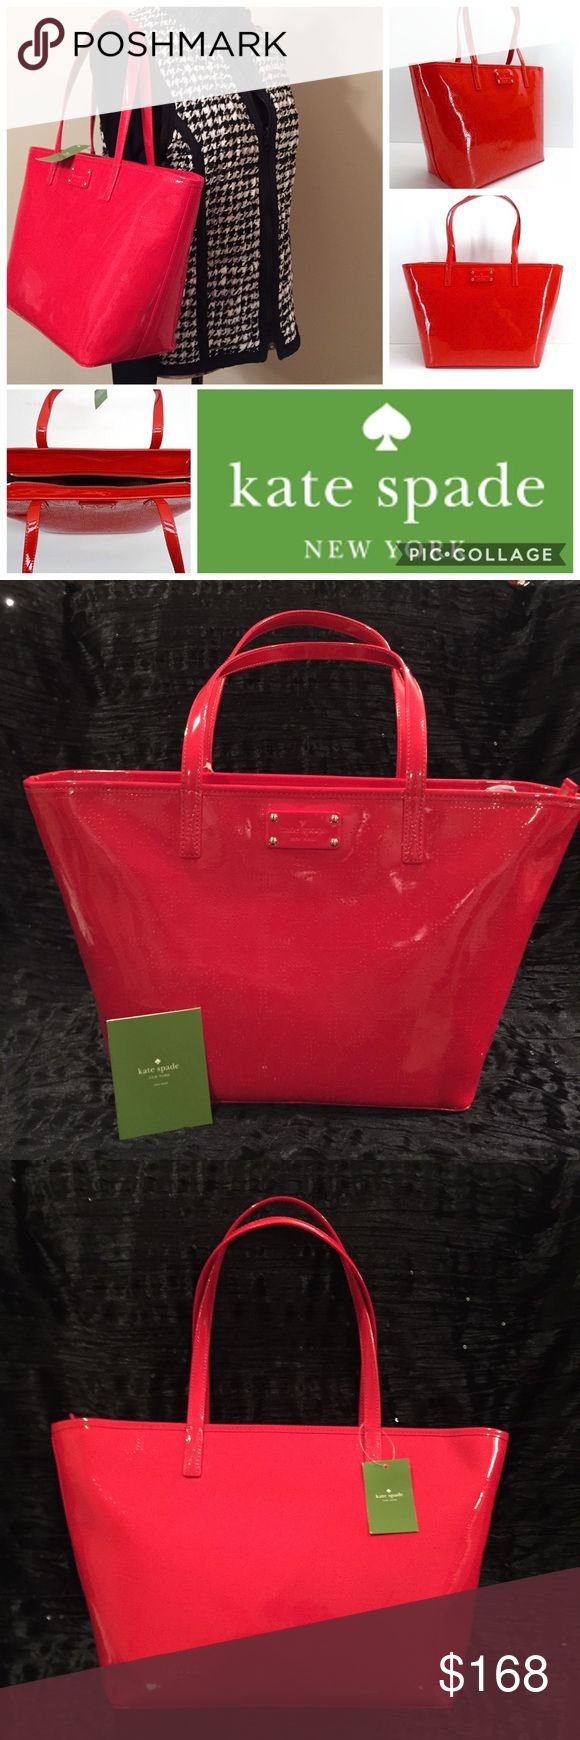 "🎁 KATE SPADE Red Patent Shoulder Bag Tote NWT KATE SPADE Red Patent Harmony Metro Tote Shoulder Bag  New With Tags  MSRP: $178.00  Color: Chili Red  Exterior Features Subtle Laser Perforated Signature Spade Pattern & Embossed Logo Plaque  Interior Signature Lining, One Zip Pocket, Logo Plaque & Two Slip Pockets Measures Approximately 11.5"" (L) At Bottom, Increasing To 16.5"" At Top 10""(H) x 5.5"" (D) Dual Handles w/ 8.5"" Drop Zip Top Closure  Includes Care Card  🎁 Great Gift Idea! 🎁 Smoke…"